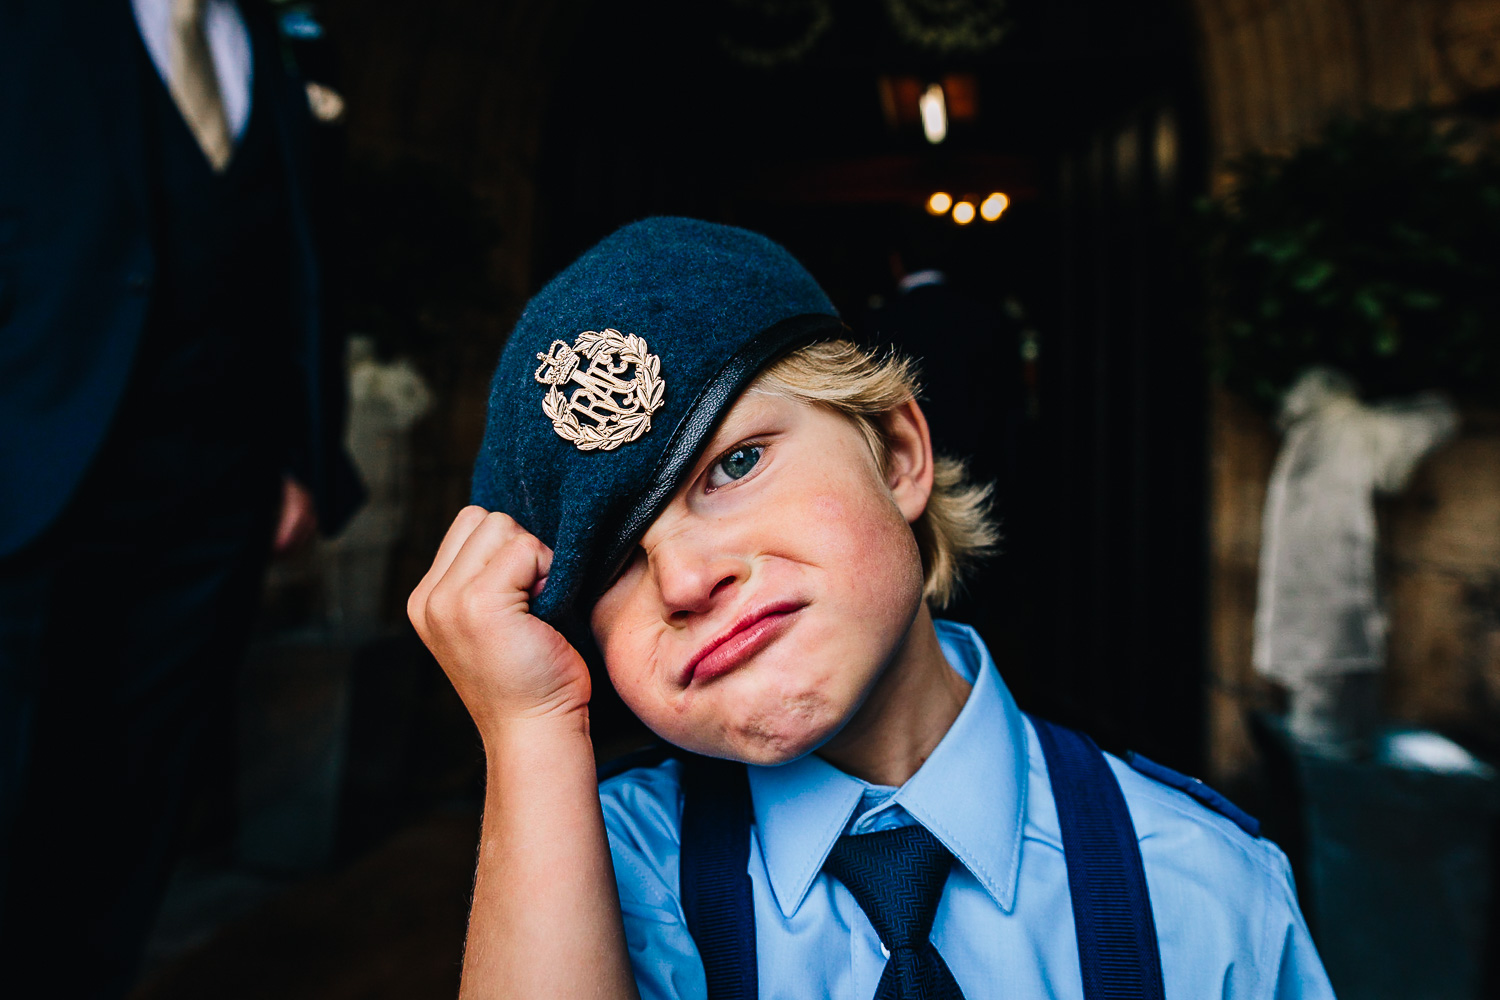 Kid pulling funny face at wedding